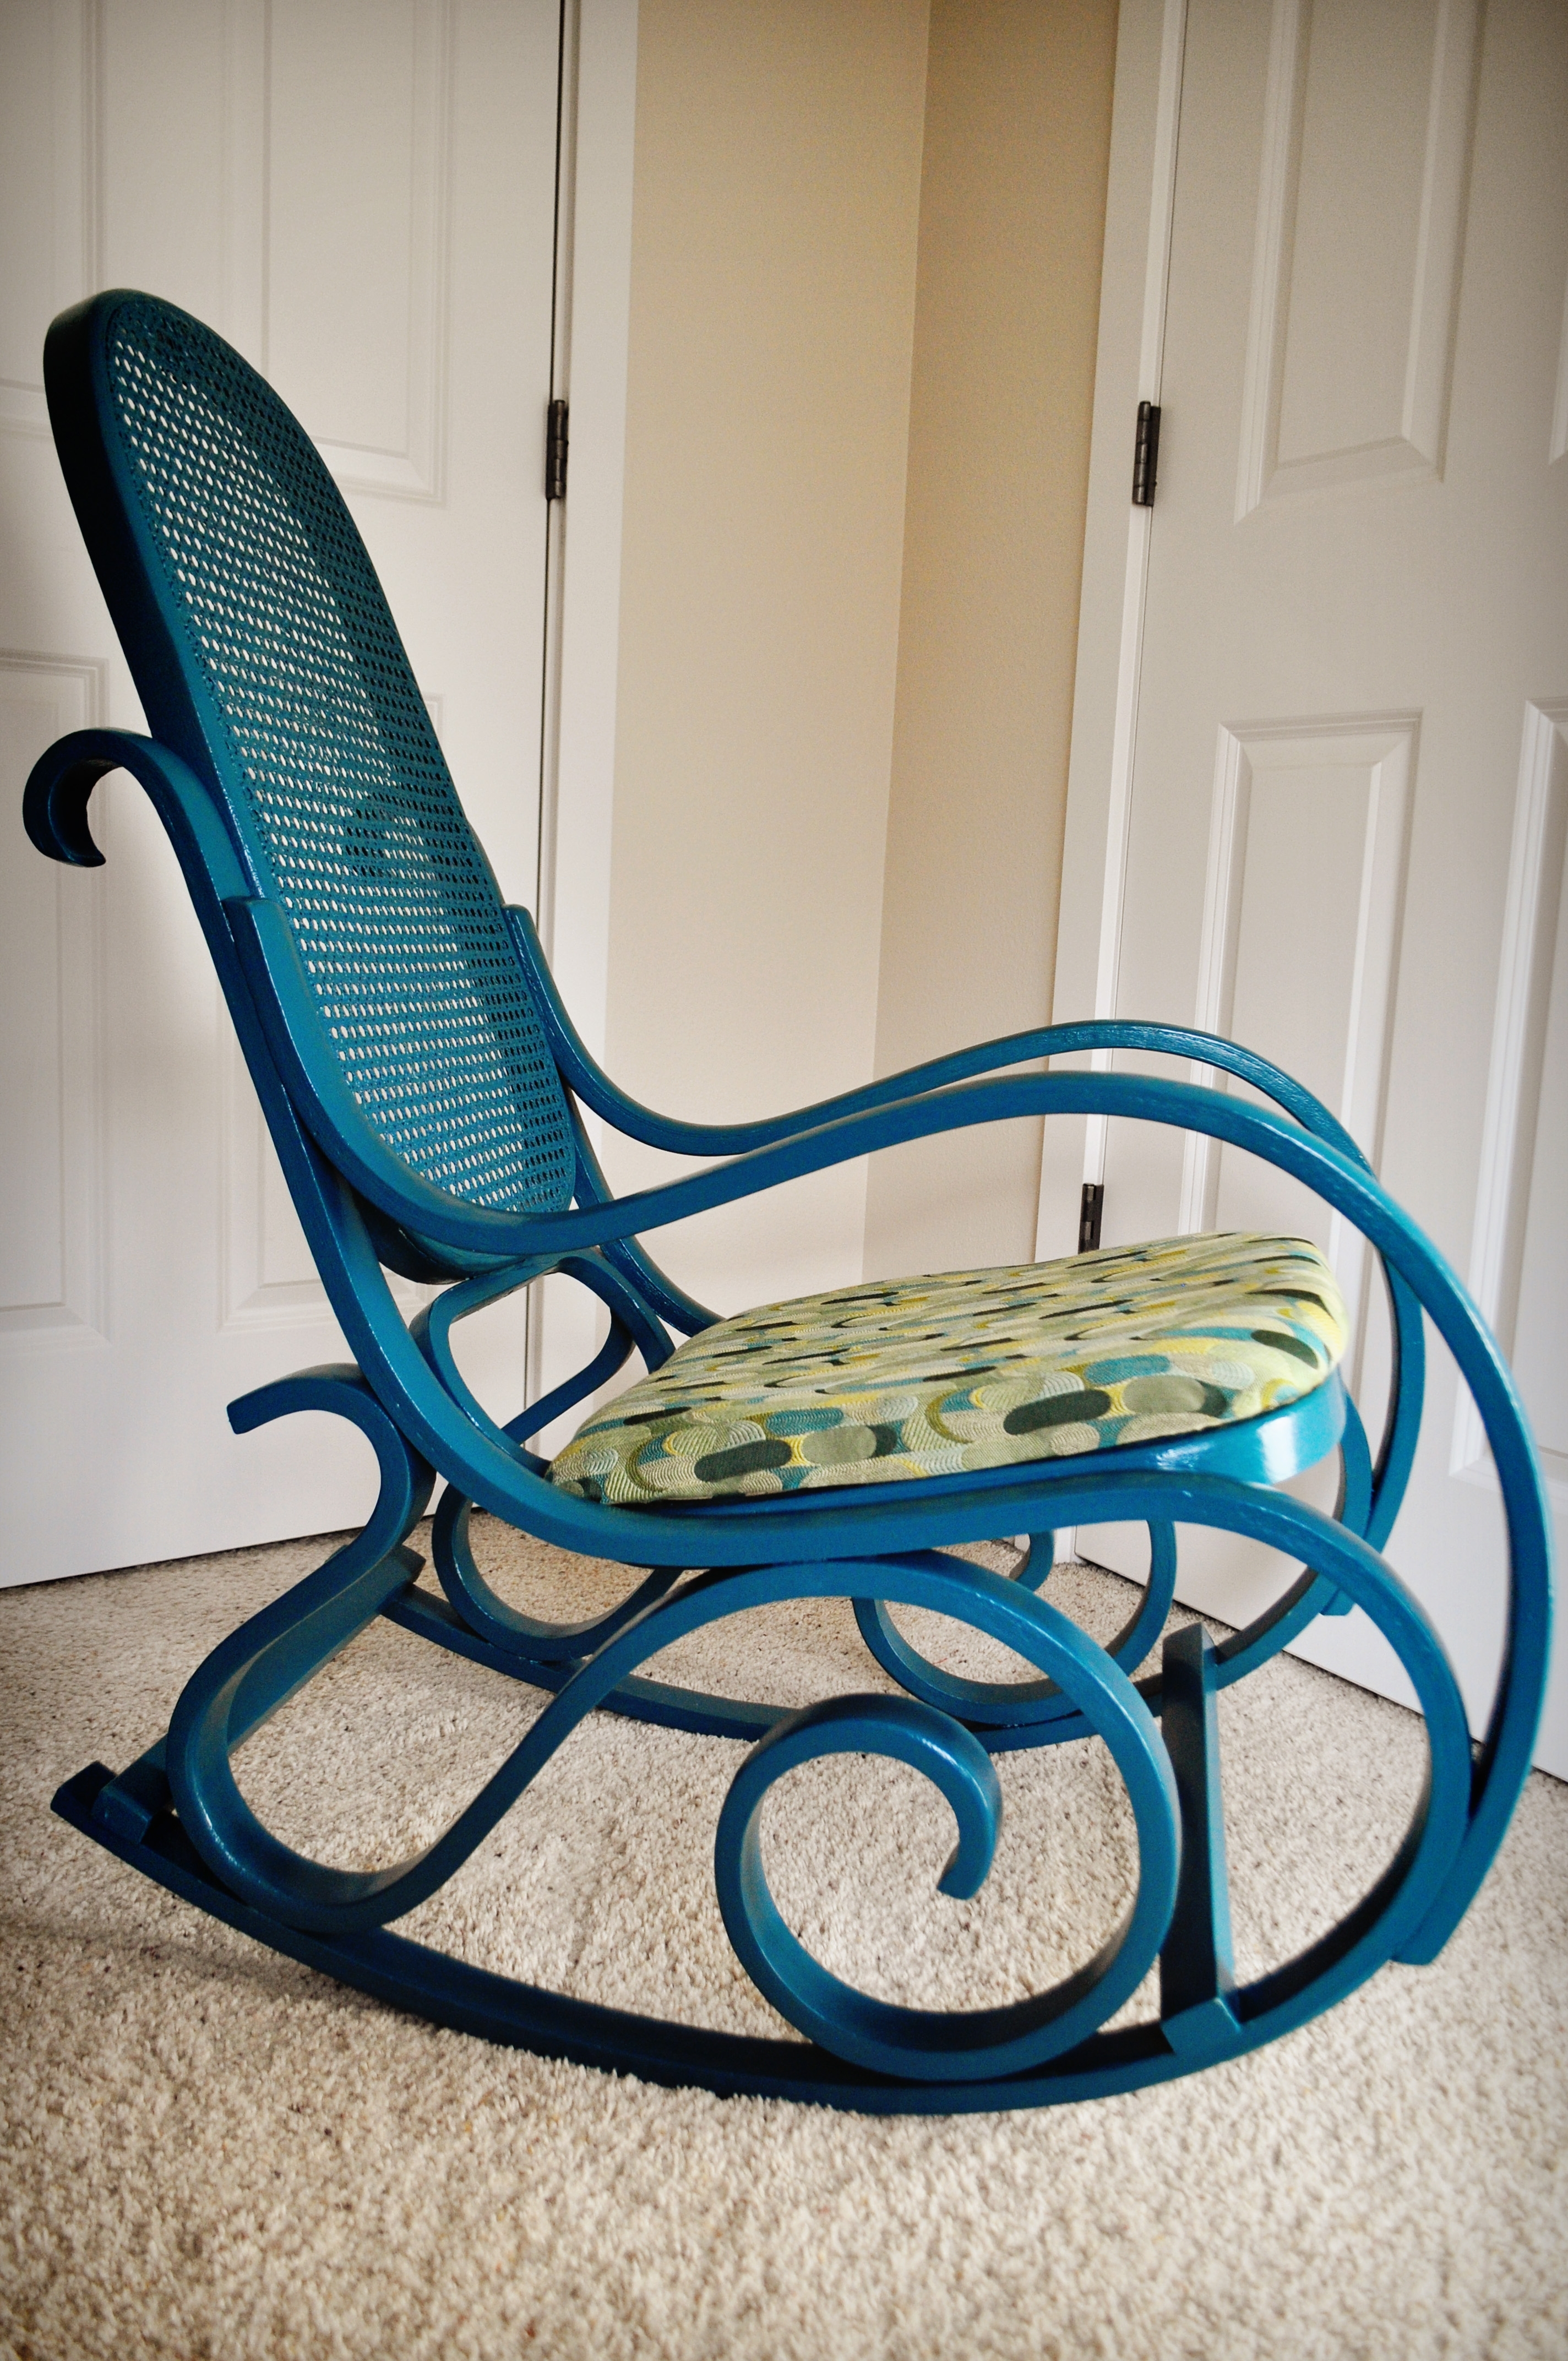 Well Known Vintage Wicker Rocking Chairs Pertaining To Furniture: Antique Wicker Rocking Chair Design (View 13 of 20)